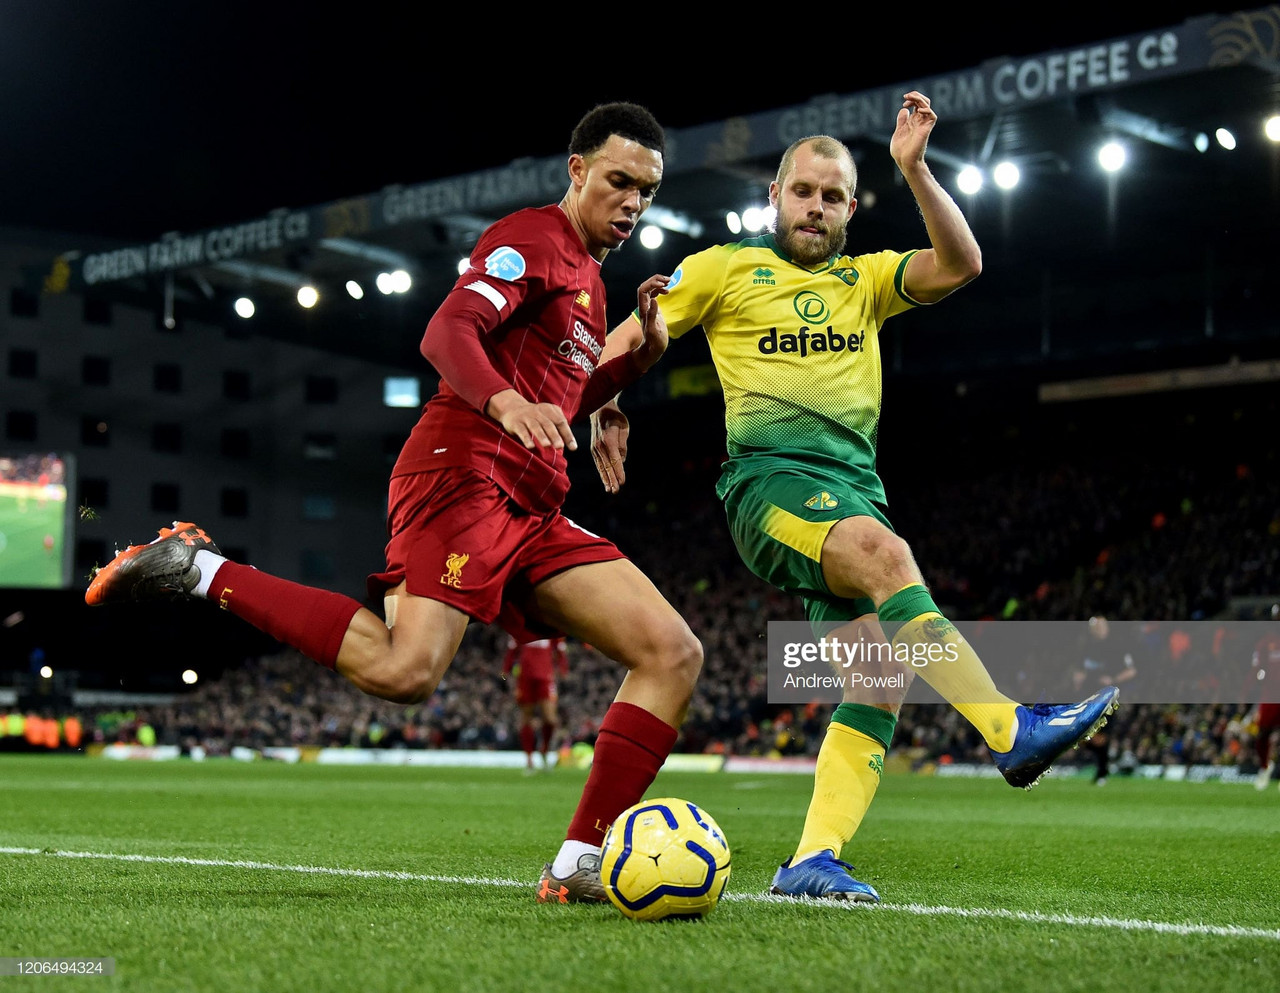 No outlet for Norwich against the full force of a ferocious Liverpool attack